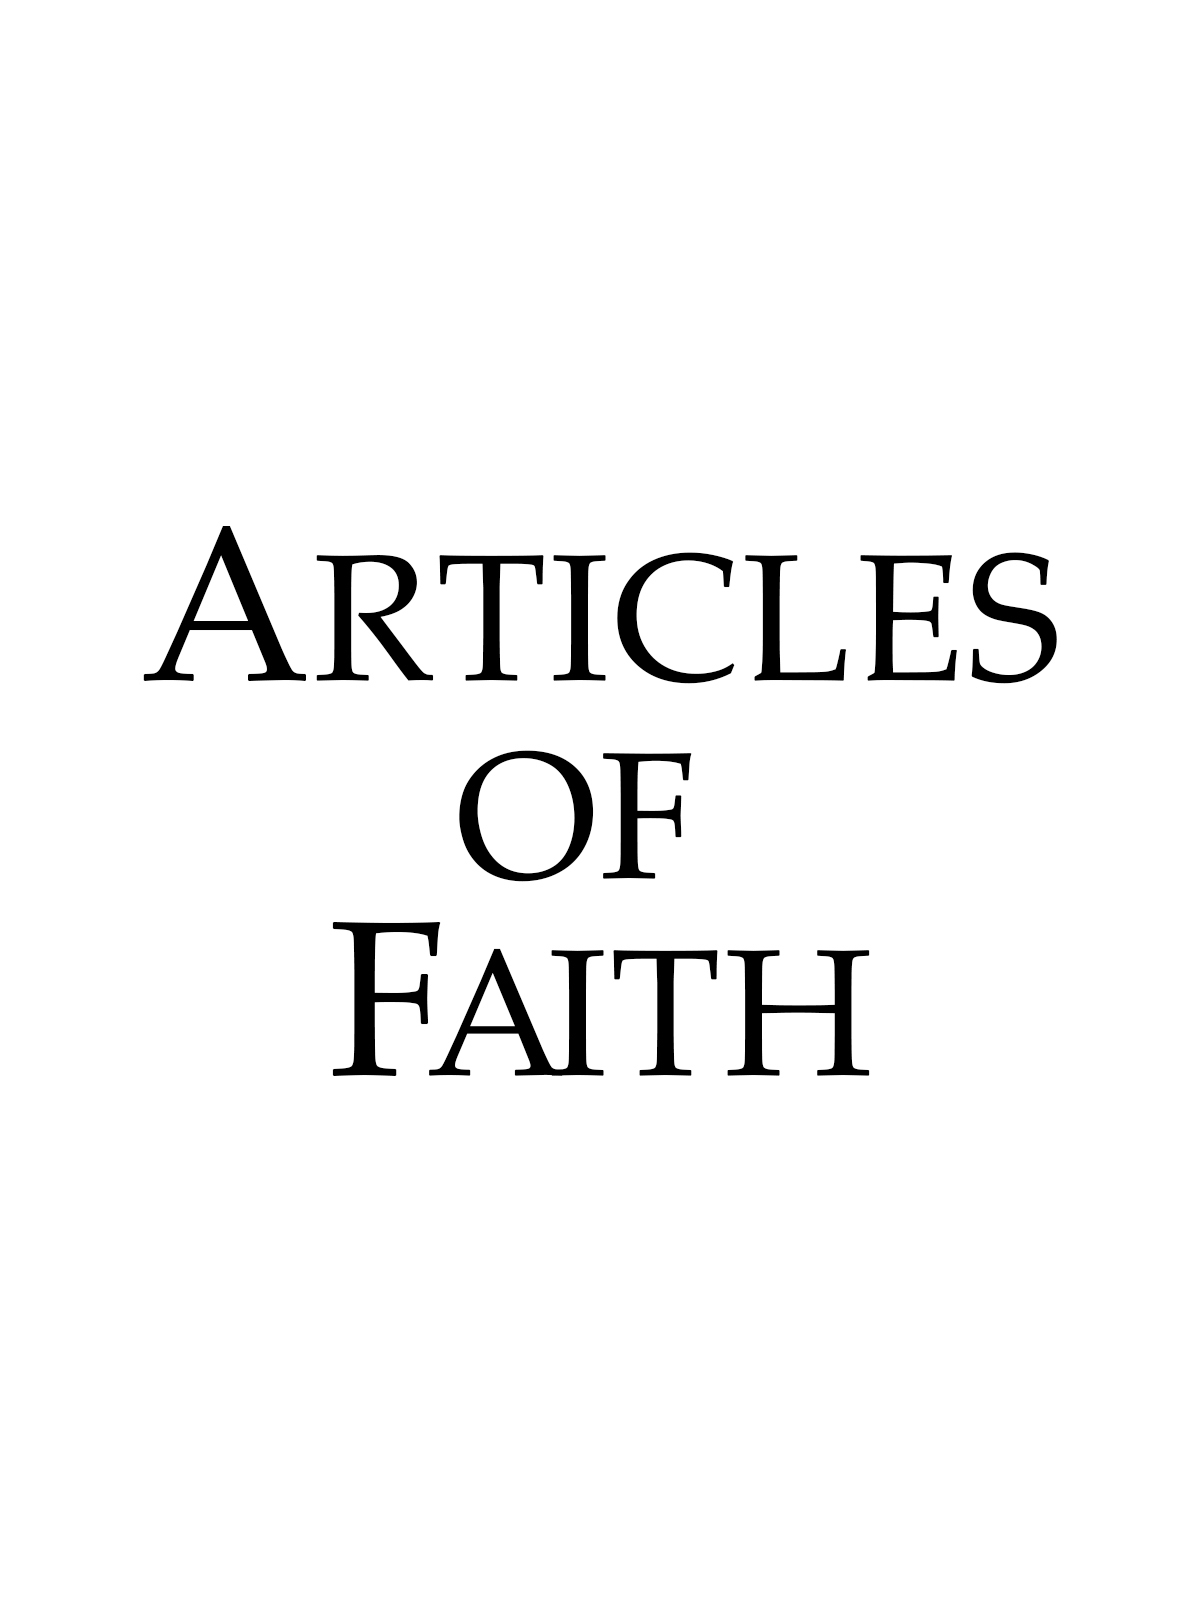 article of faith coloring pages - photo#33